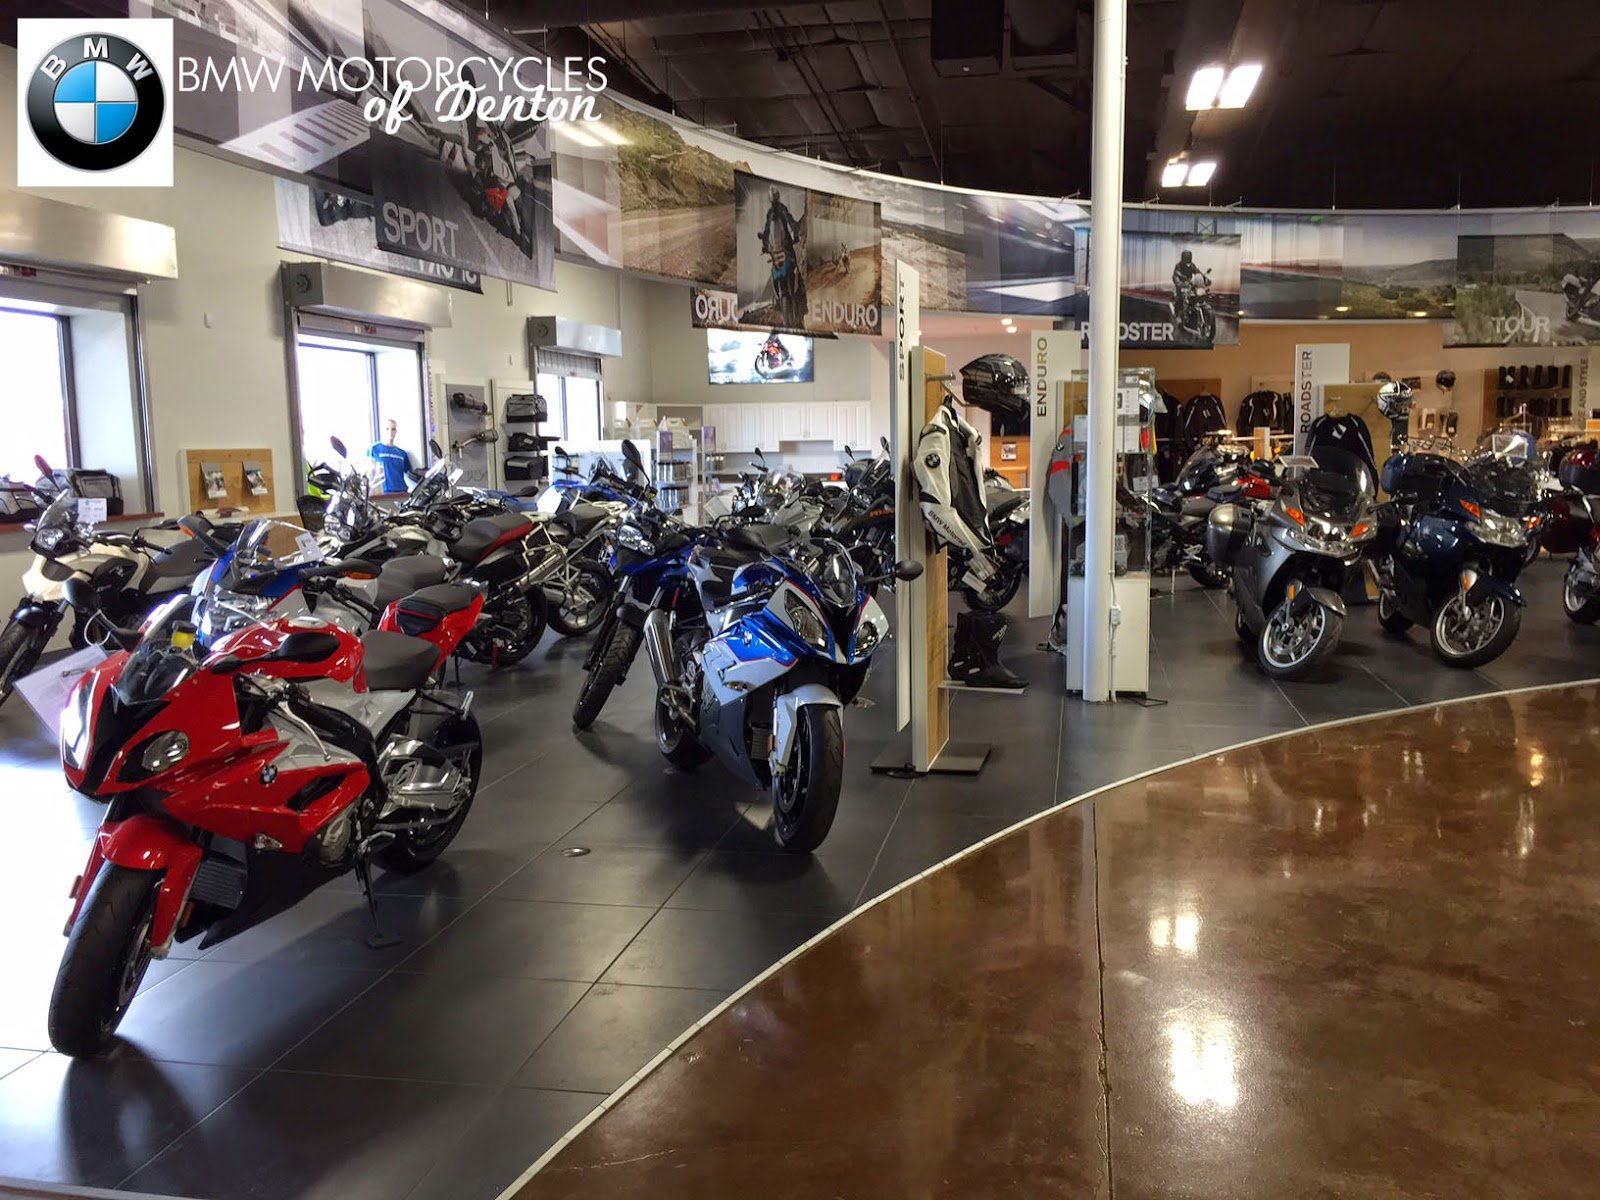 Motorcycle Stores Near Me >> Bmw Motorcycles Of Denton 2015